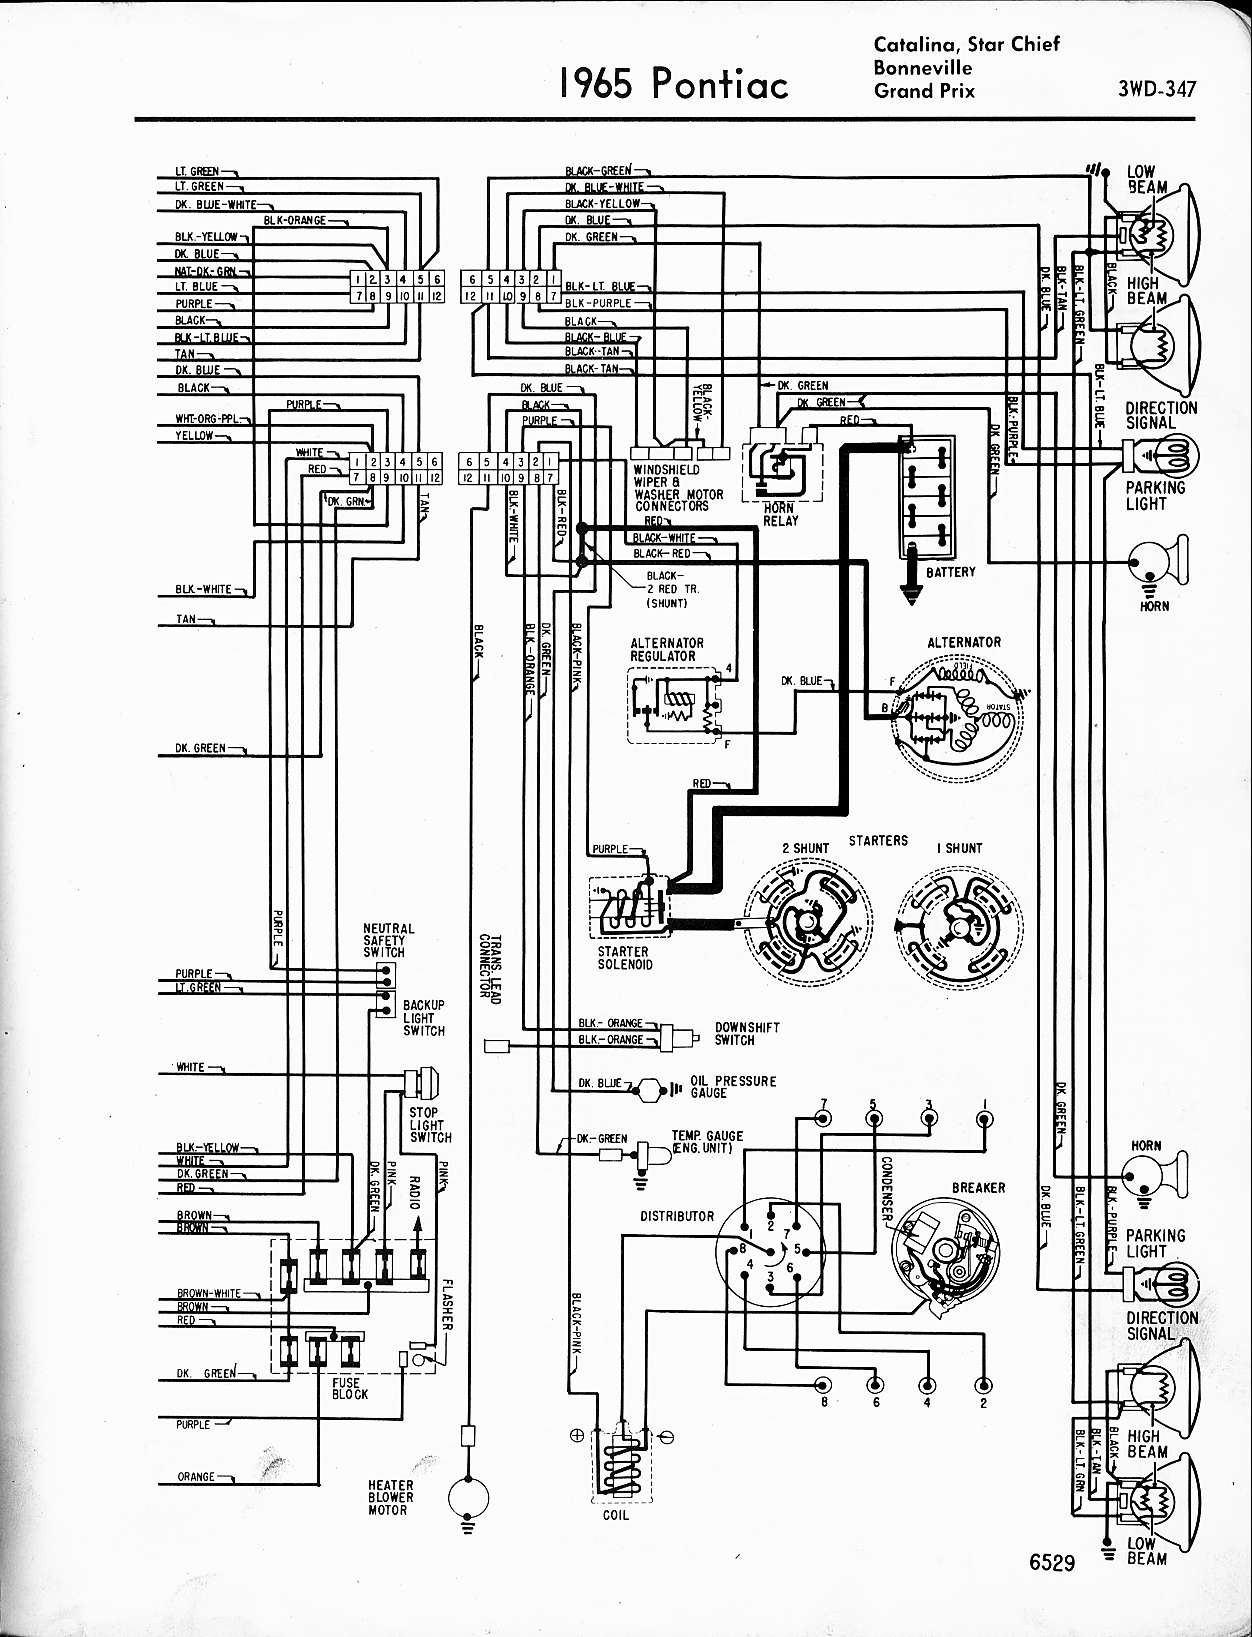 1967 firebird ignition switch wiring diagram with 64 Pontiac Wiring Diagram on 1972 Cj5 Fuel Tank Wiring Diagrams besides 67 Ford Mustang Wiring Diagram additionally 1969 Firebird Wiring Diagram also Automotive Charging System Wiring Diagram moreover 1967 Camaro Painless Wiring Harness Diagram.